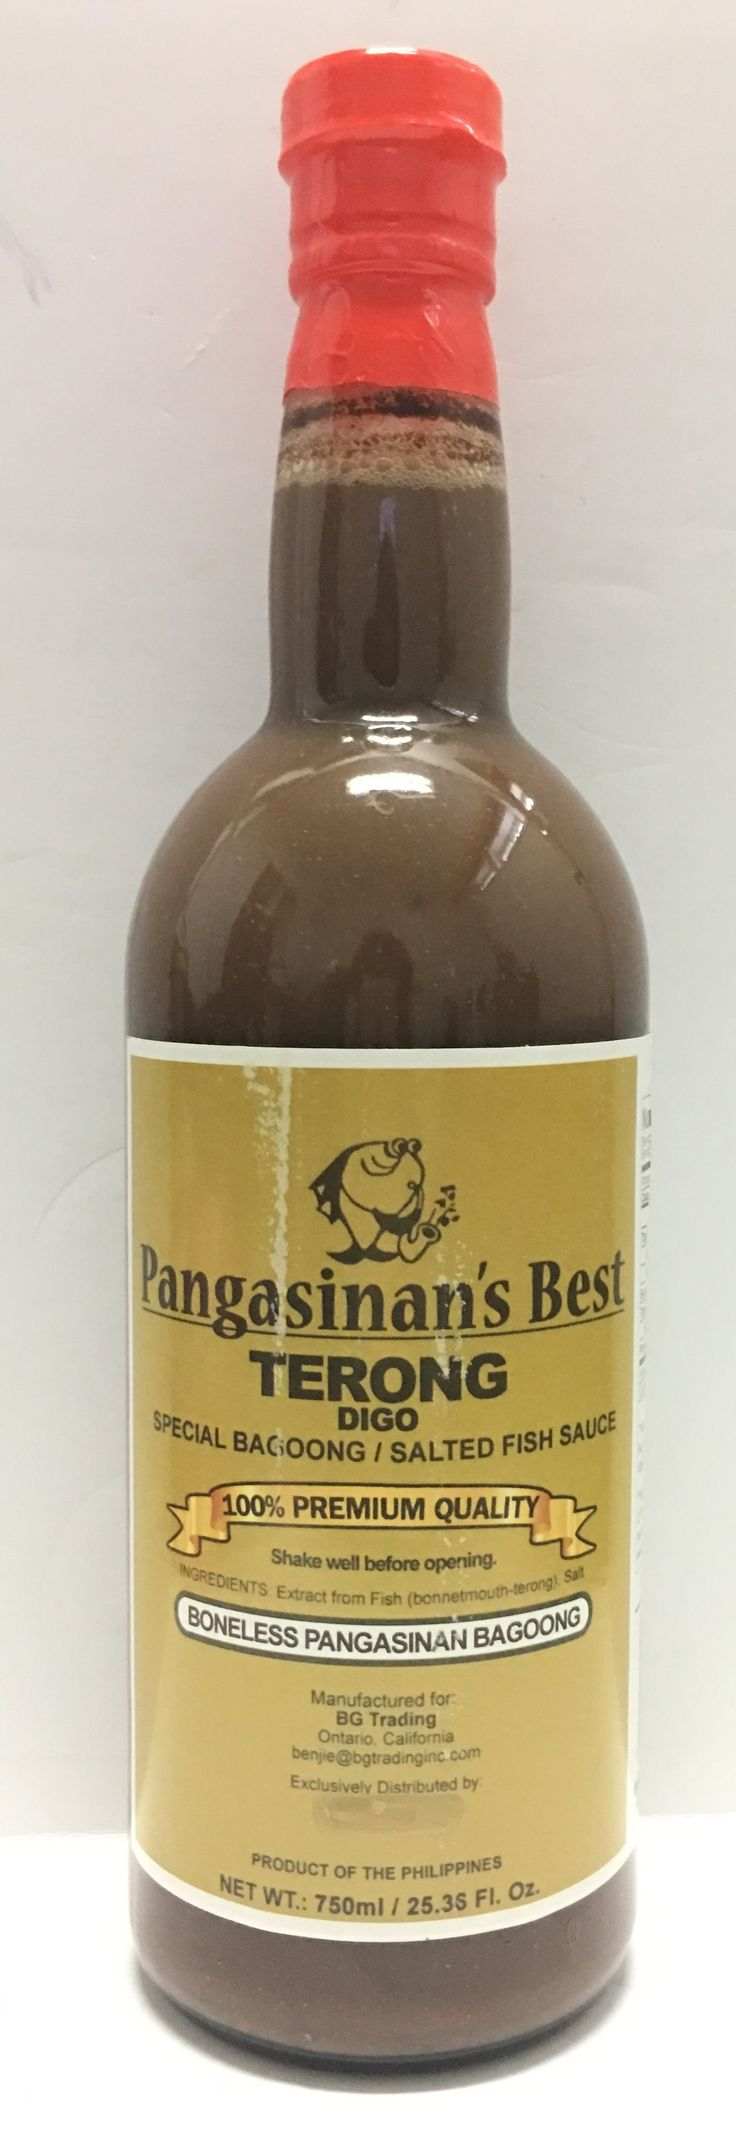 New Arrivals at @FilStopGrocery Online #Filipino Shop: Pangasinans Best Special Terong Digo. filstop.com/pangasinans-best-sp... #FilStop